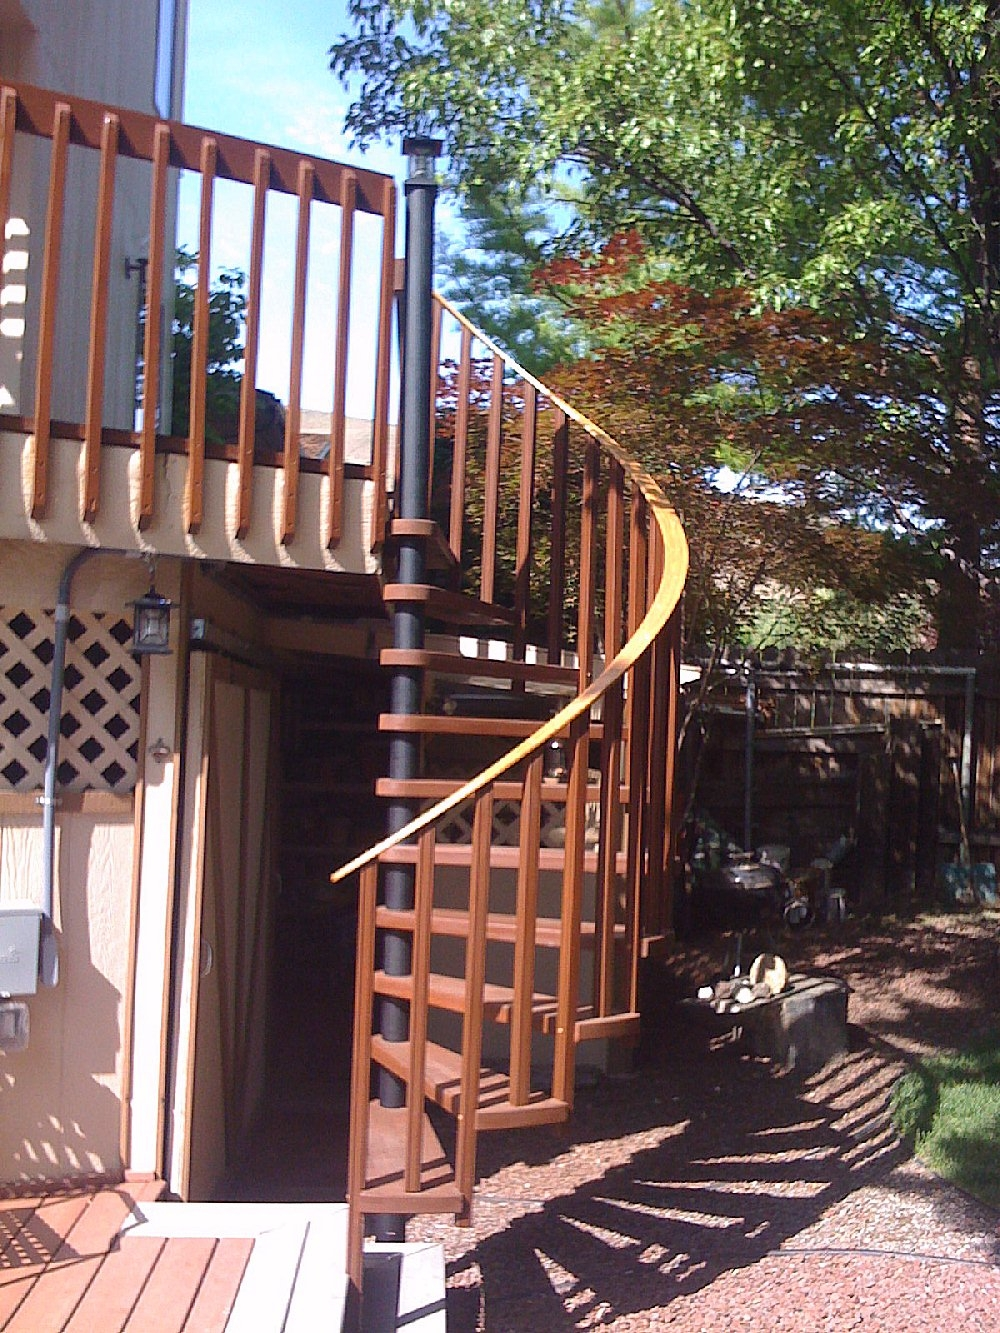 Diy Spiral Staircases | Outdoor Spiral Staircase For Deck | Farmhouse | Basement | Multi Level | 2Nd Floor | Steel